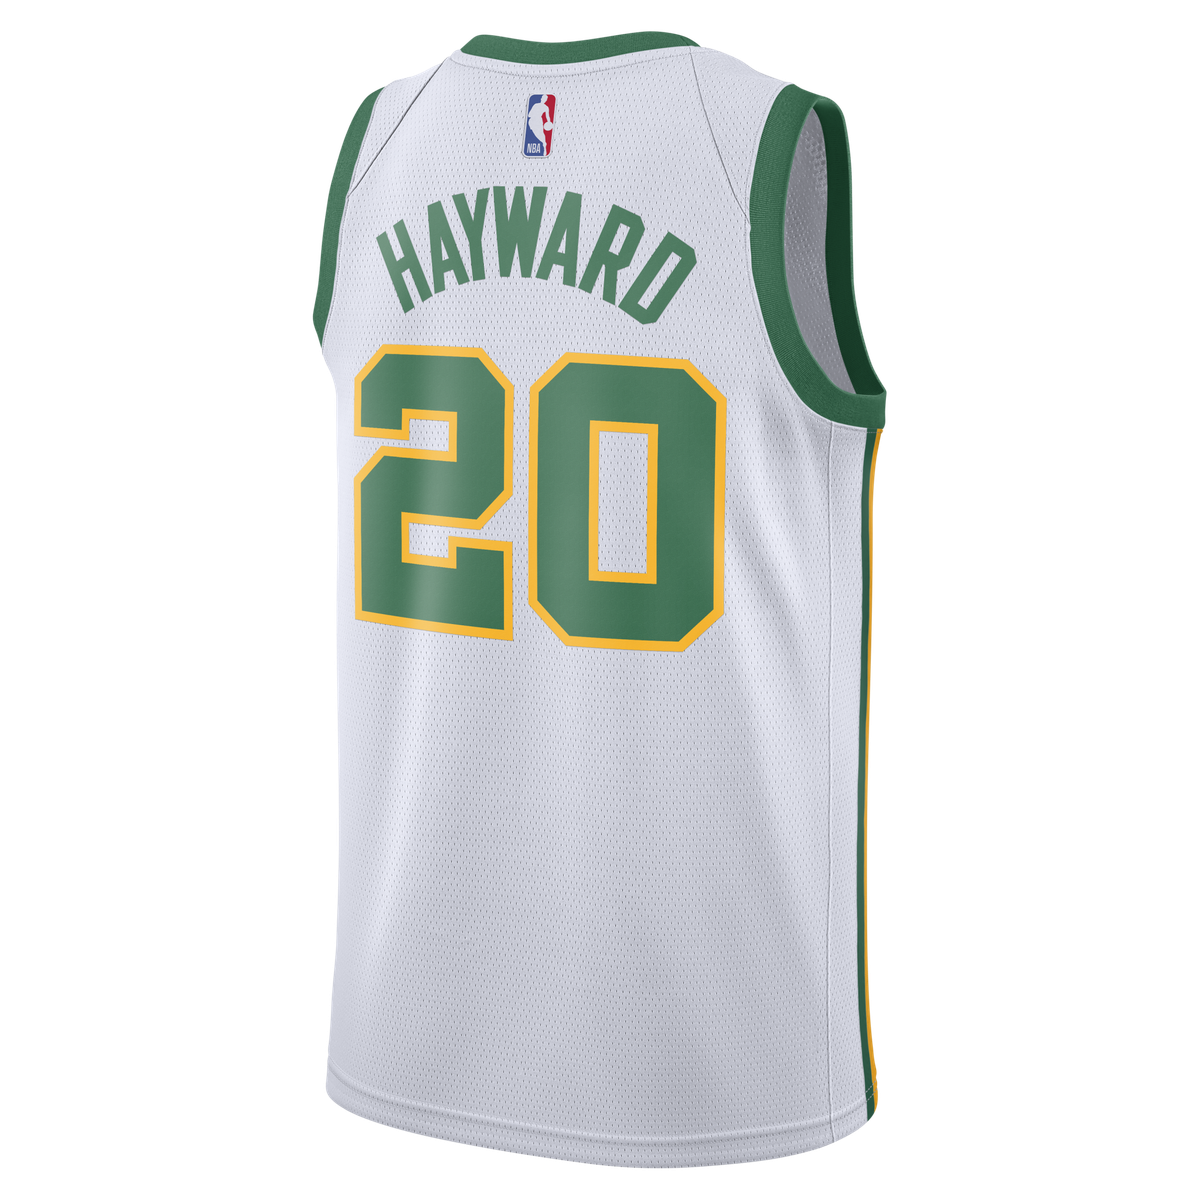 size 40 676c7 95485 NBA City Edition: The jerseys, T-shirts and merch you can ...